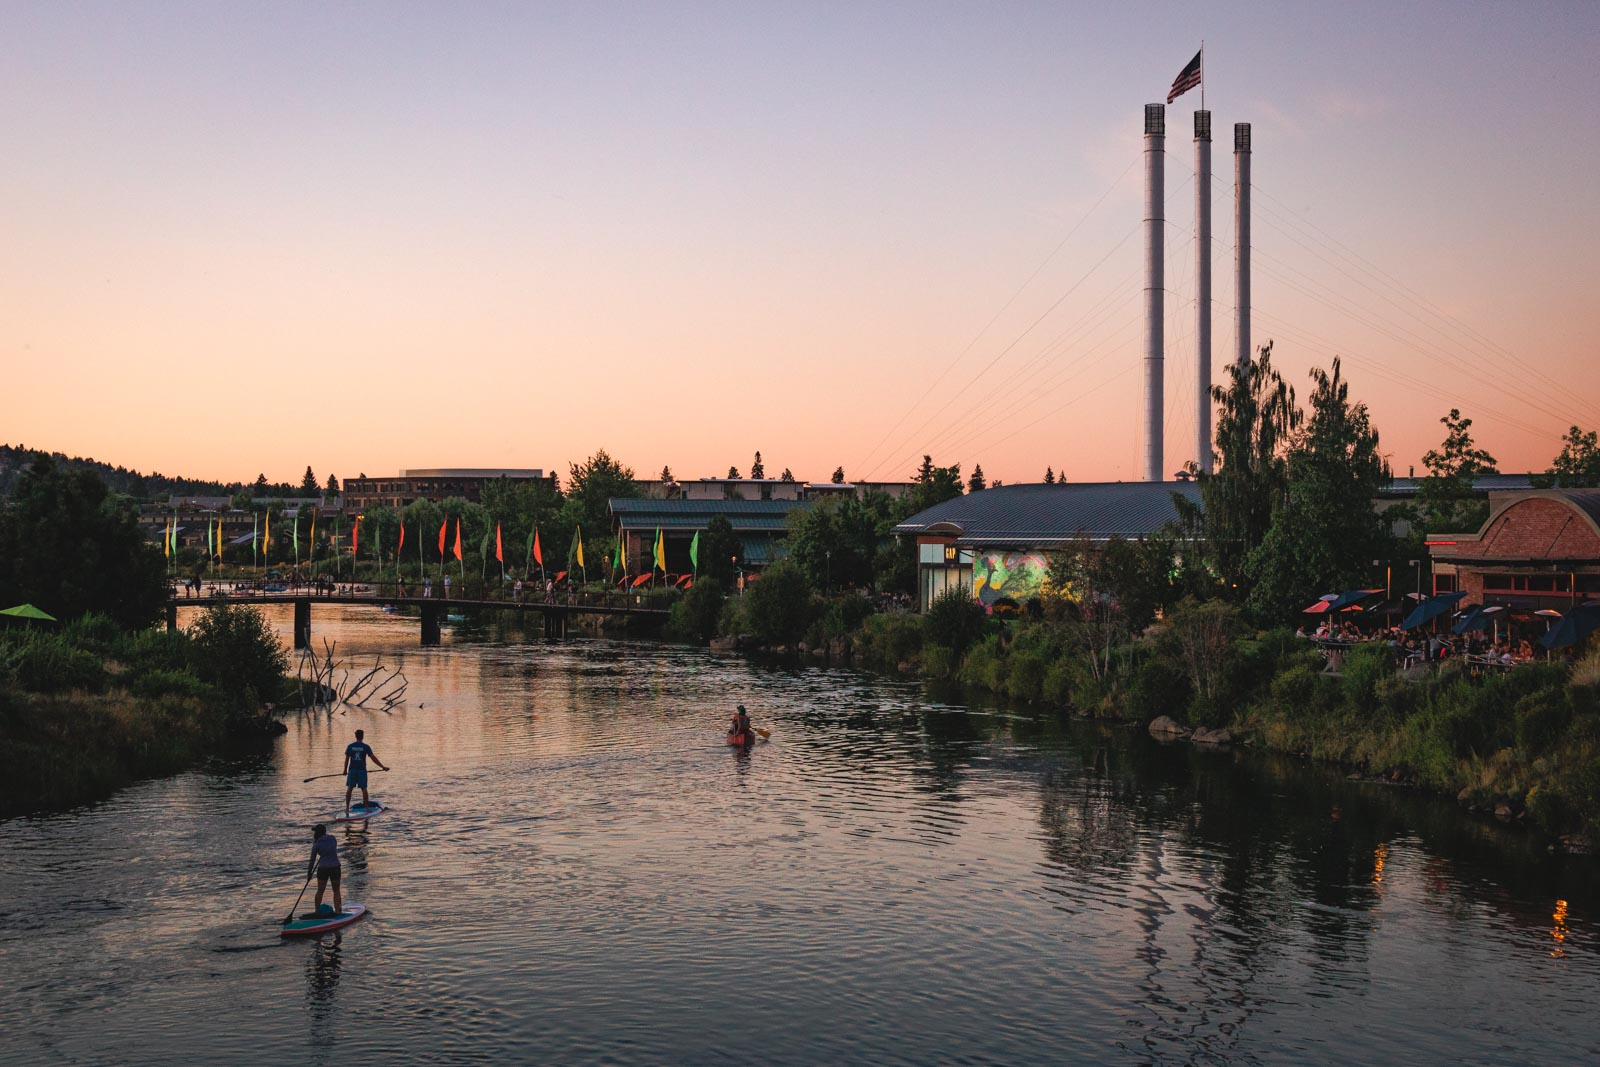 Picture of the Deschutes river running through the old mill in Bend